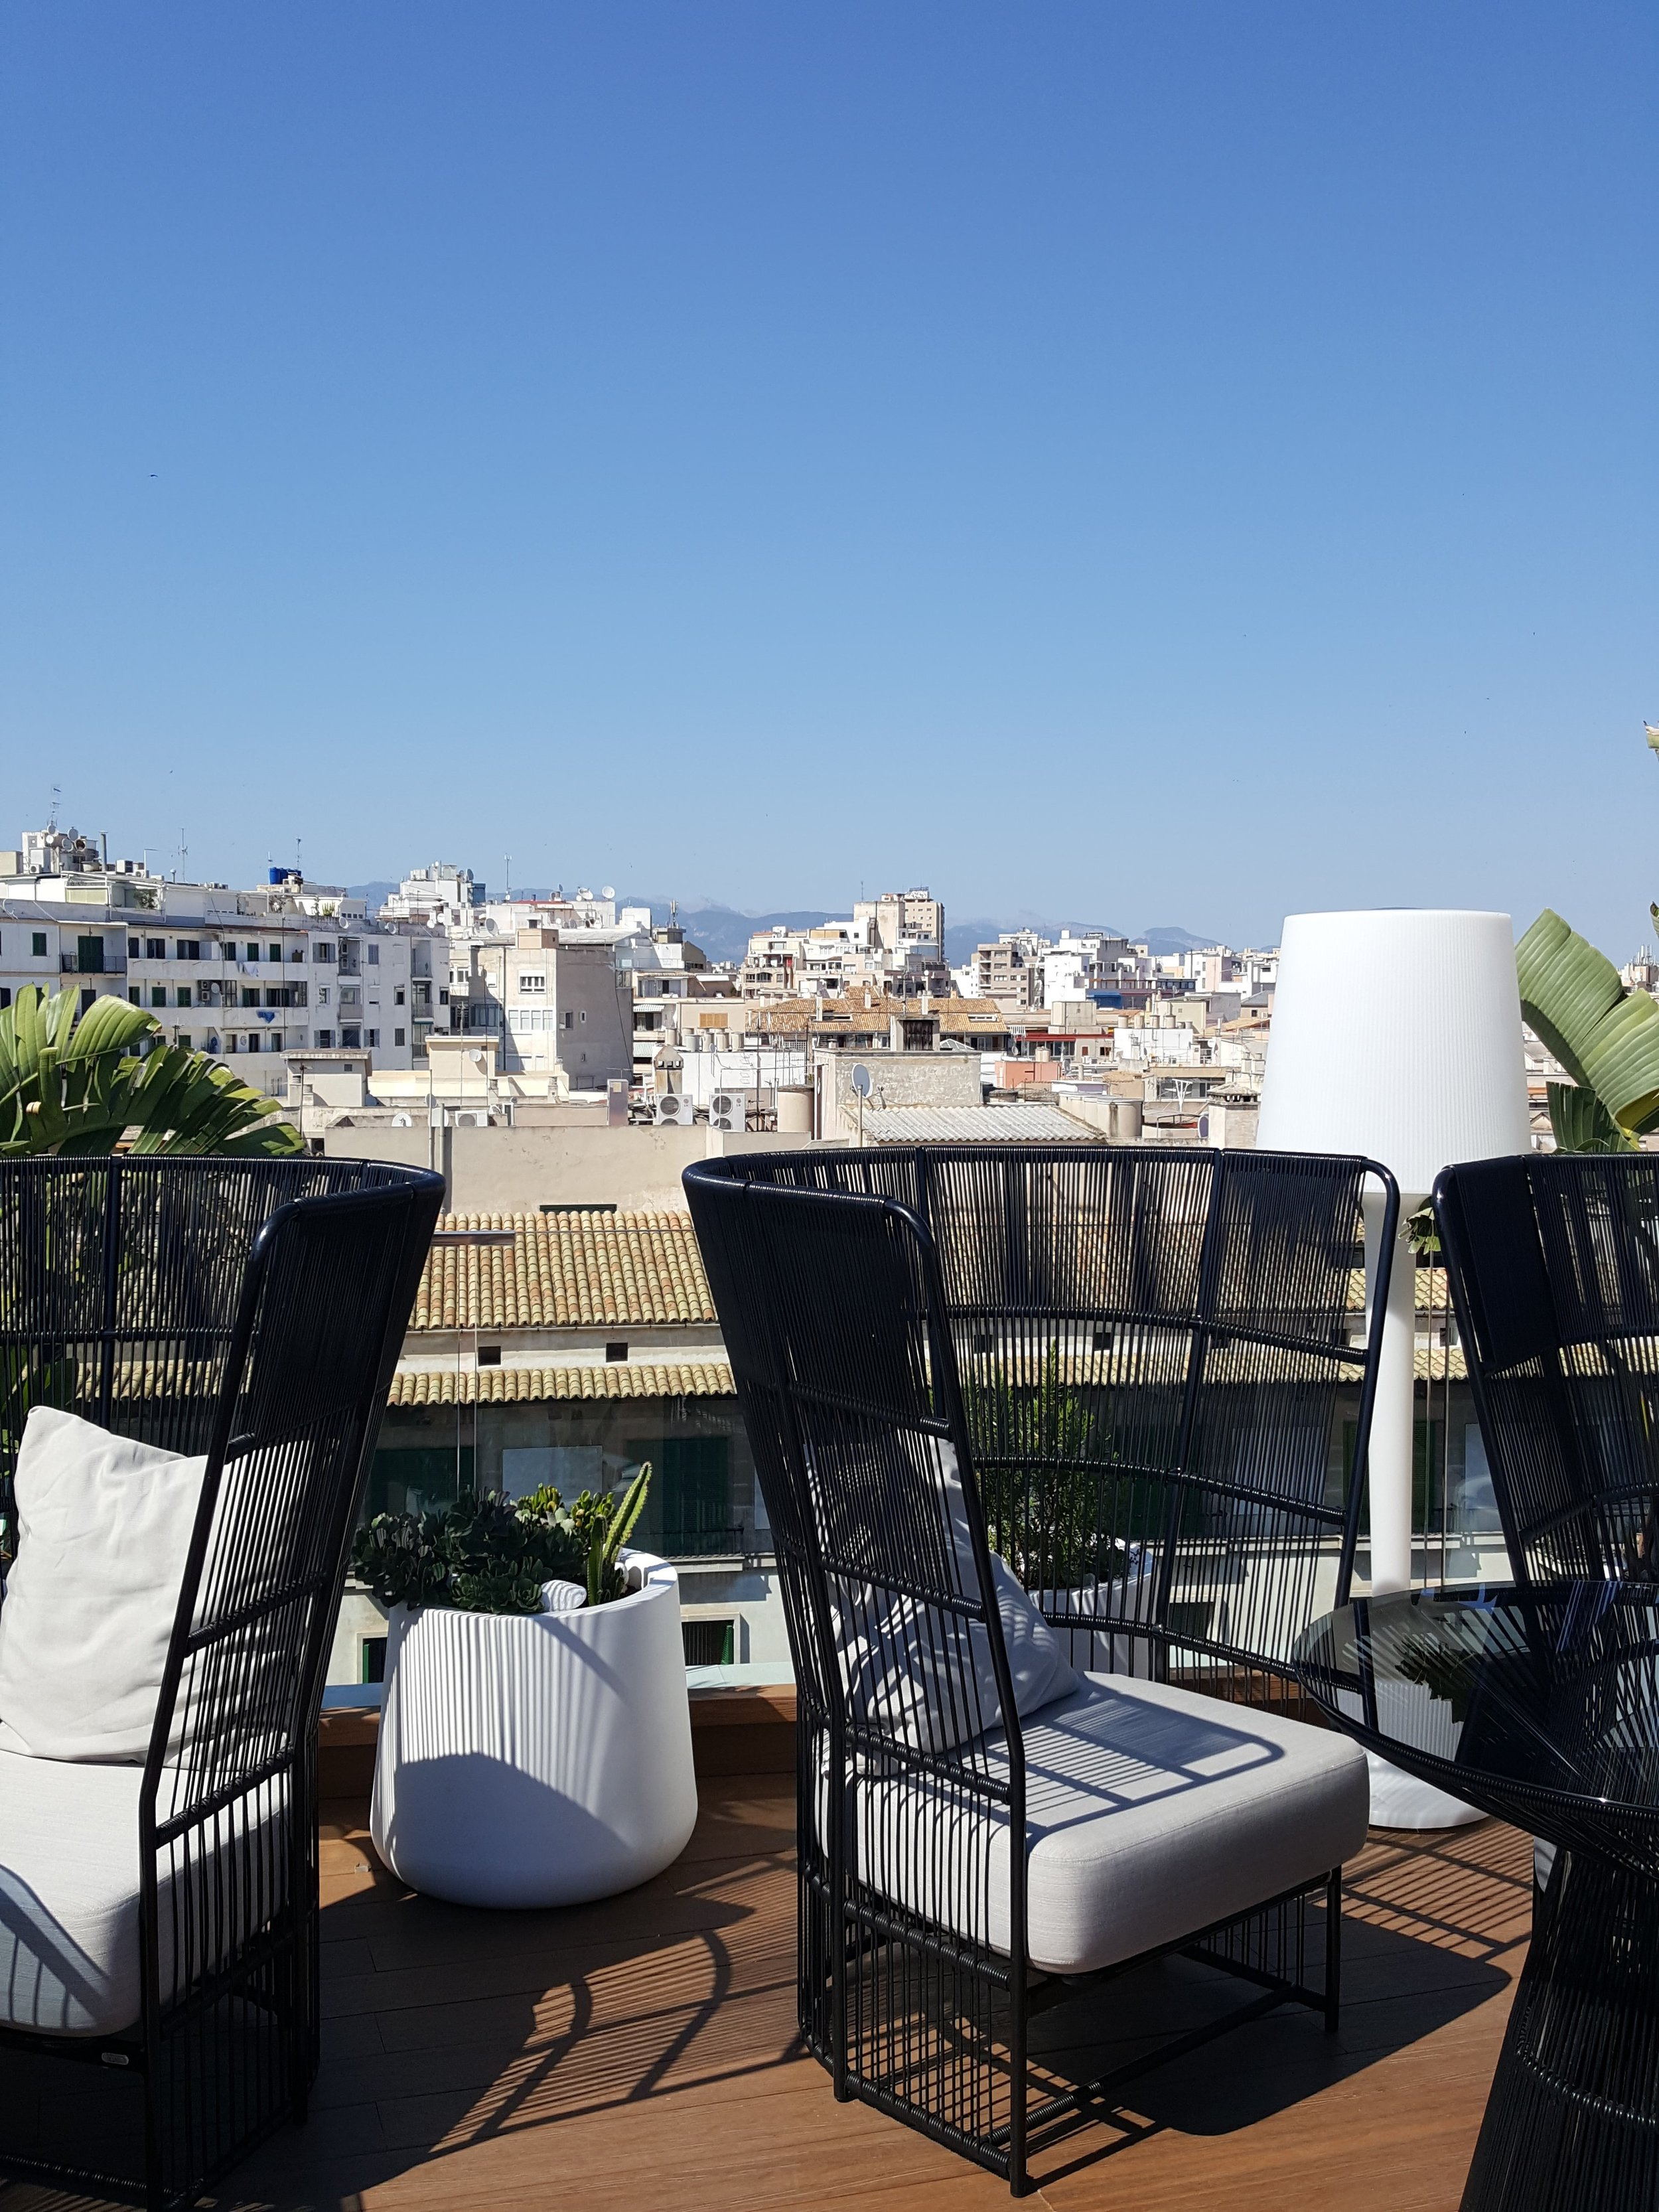 The Scandi style outdoor seating on the roof terrace of Hotel Nakar